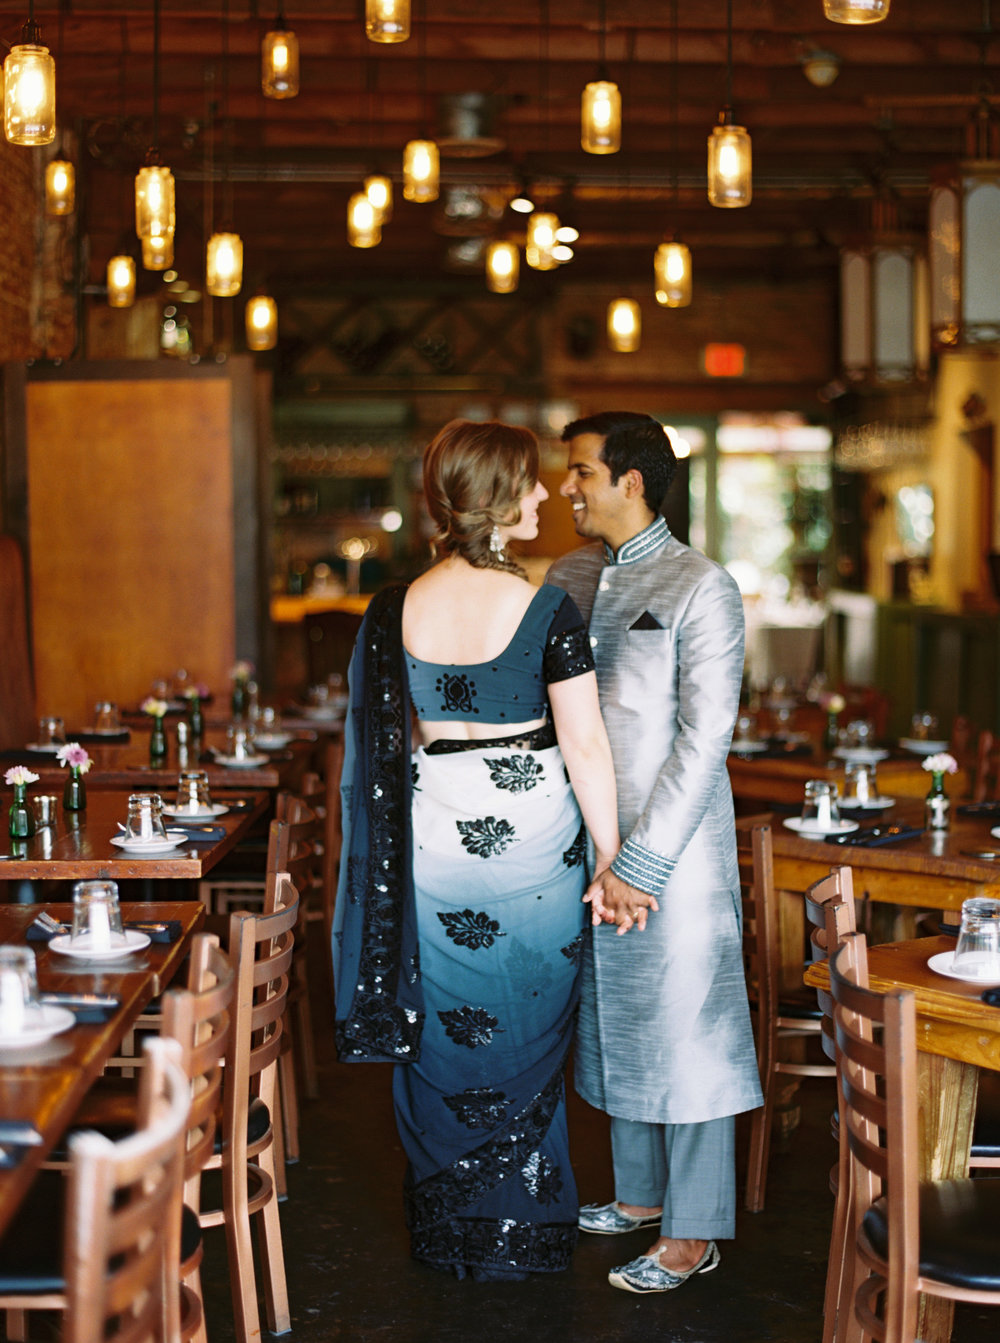 Wahoo_Grill_Atlanta_Indian_Wedding_Abigail_Malone_Photgoraphy_FIlm-129.jpg